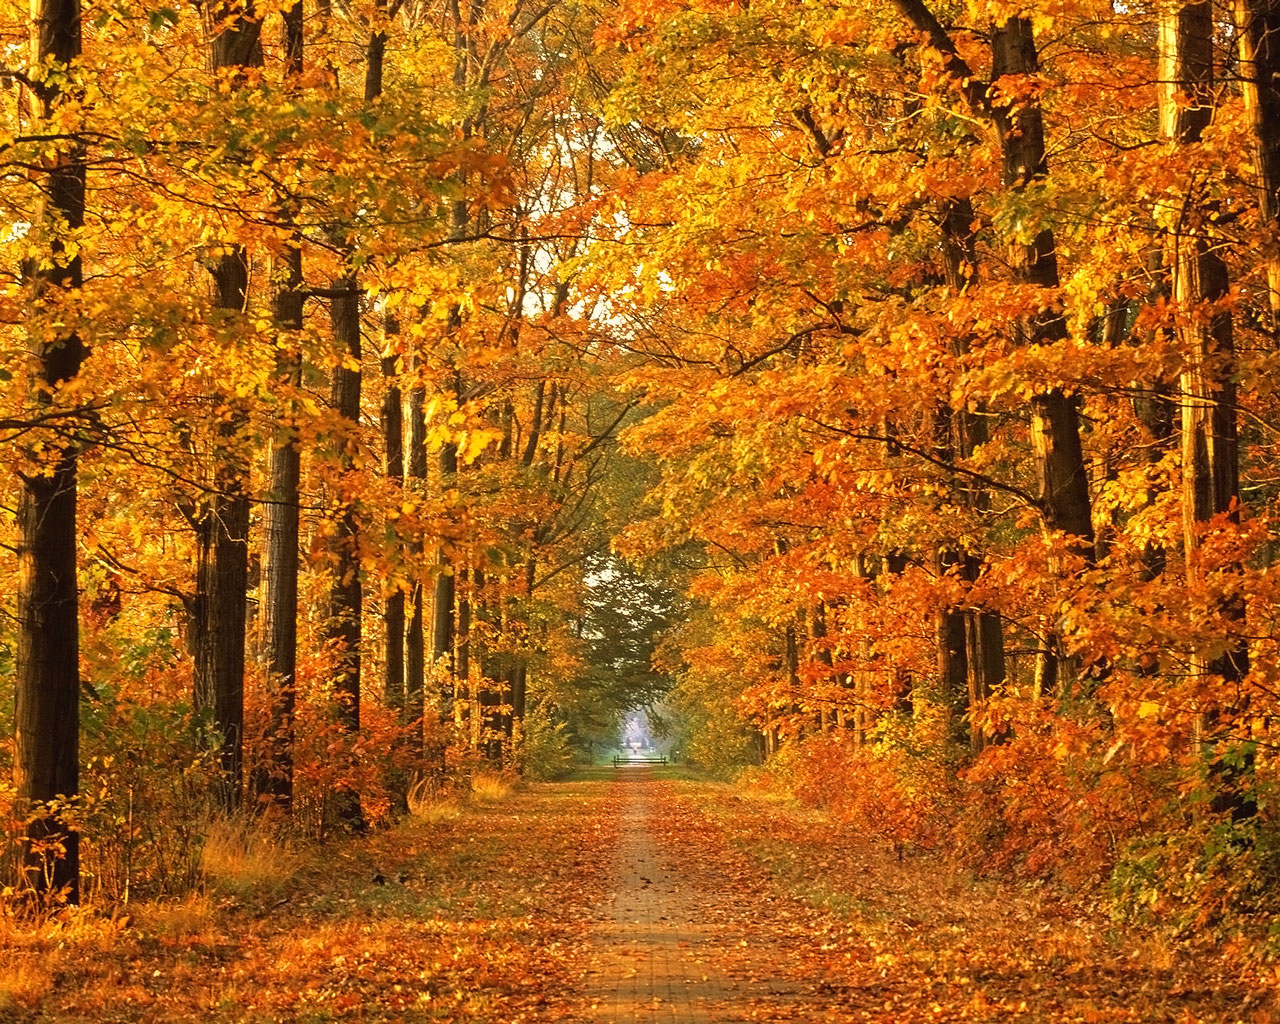 autumn wallpaper widescreen autumn forest wallpaper autumn wallpaper 1280x1024